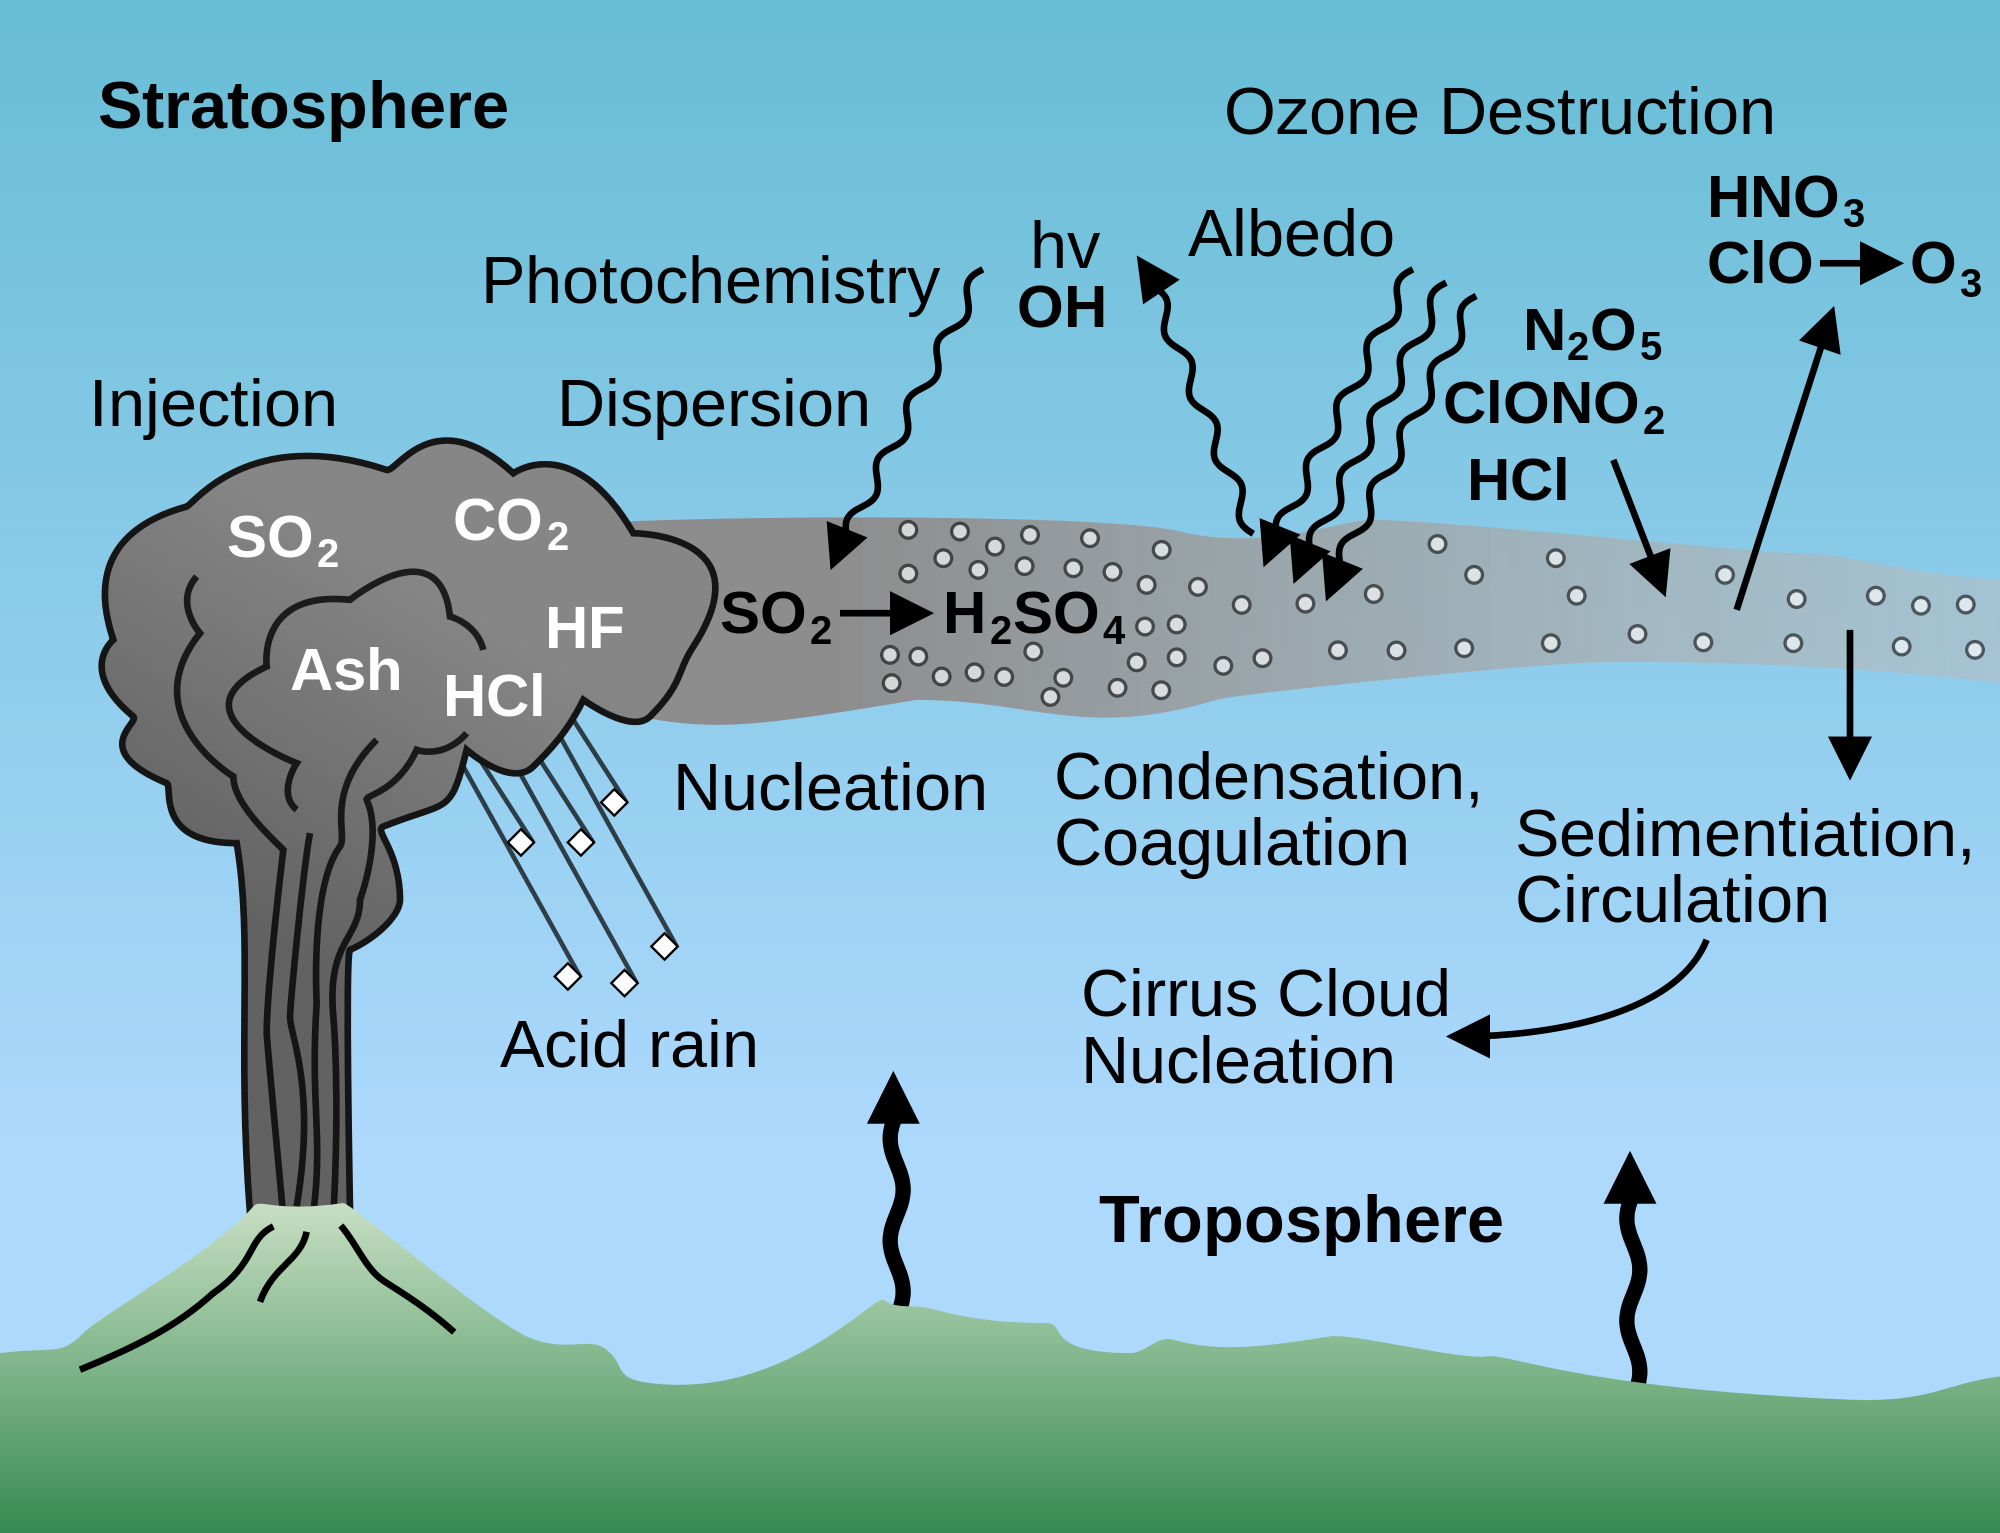 The gas ejected from a volcanic eruption creates clouds of sulfate particles that reflect light from the sun and cause the earth to cool.   CFLM/Wikimedia Commons  (public domain)